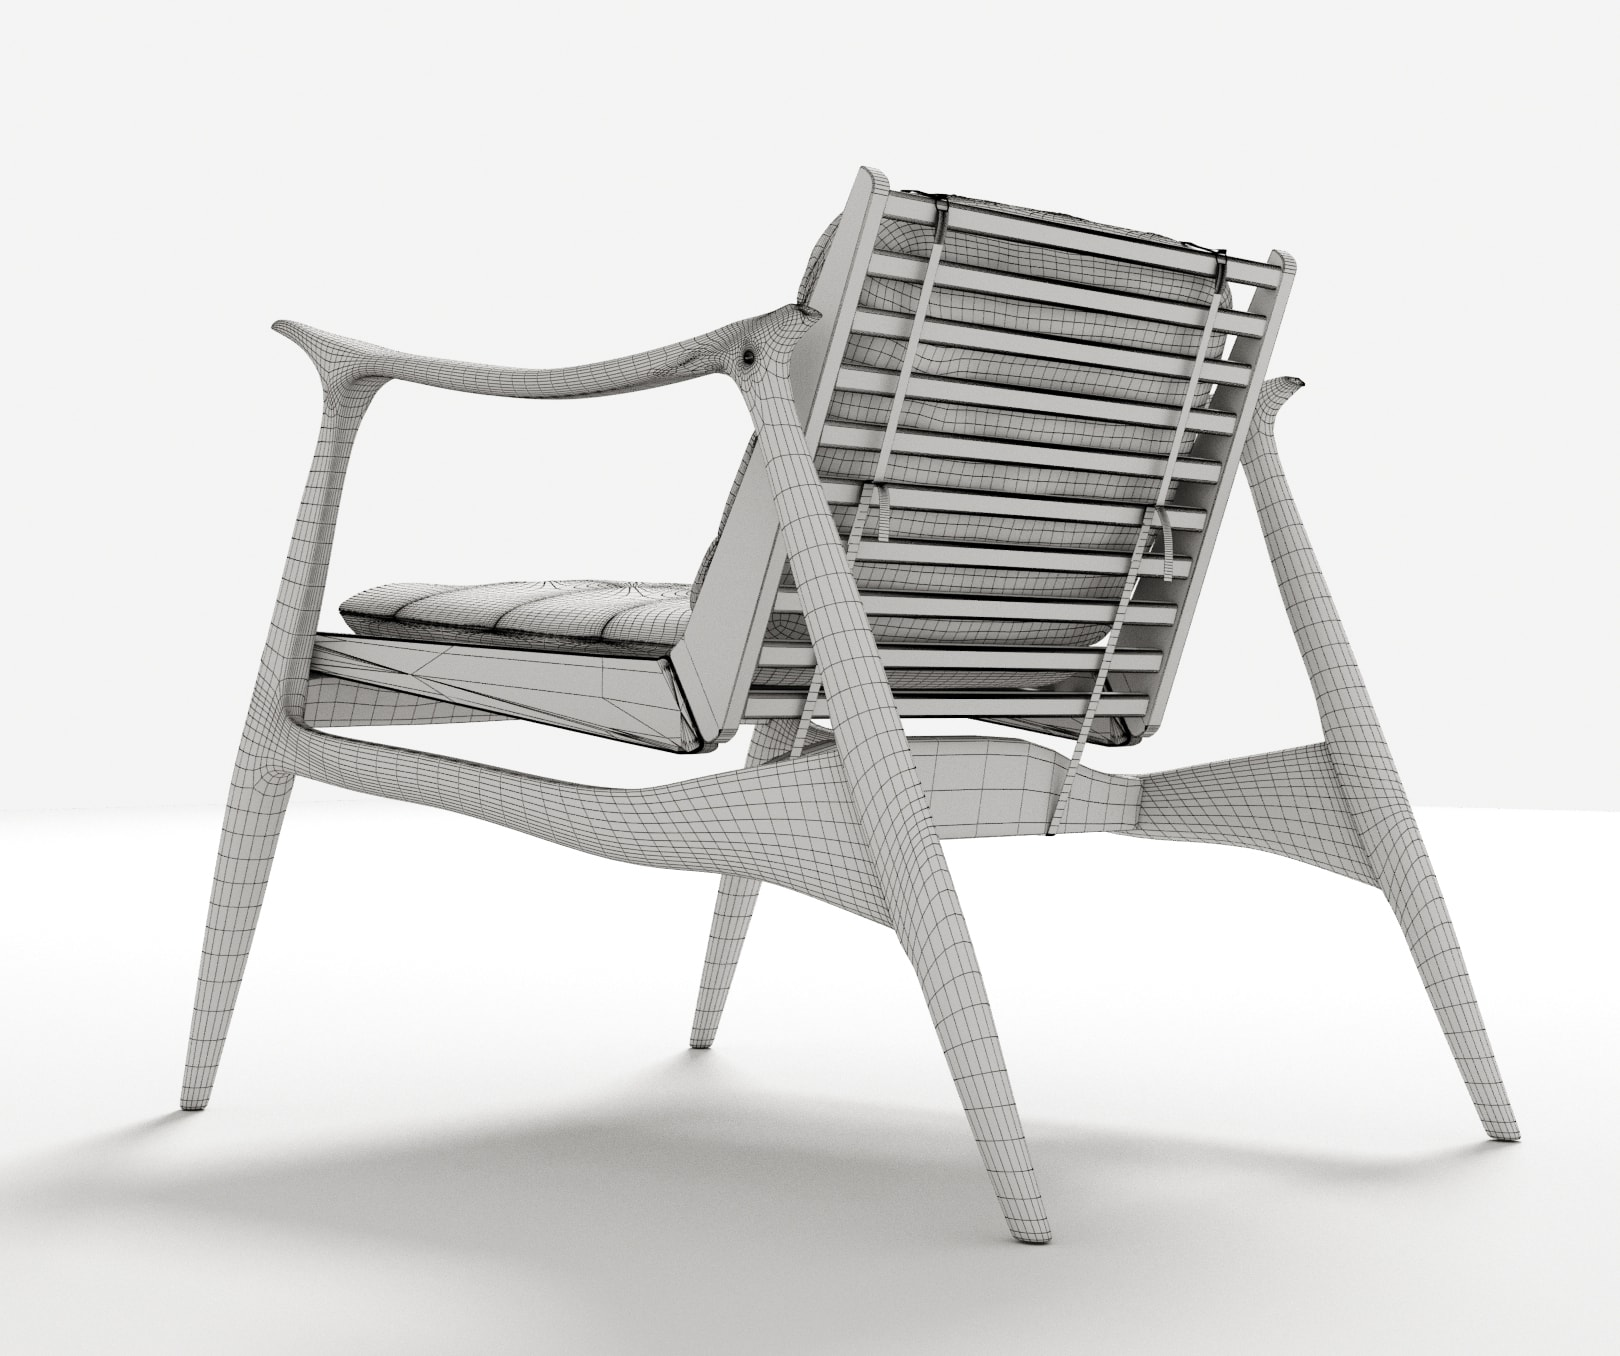 //www.vpva.pt/wp-content/uploads/2018/02/vpva.pt-3d-render-archviz-architecture-project-Atra-Lounge-Chair-Model-3d-6.jpg